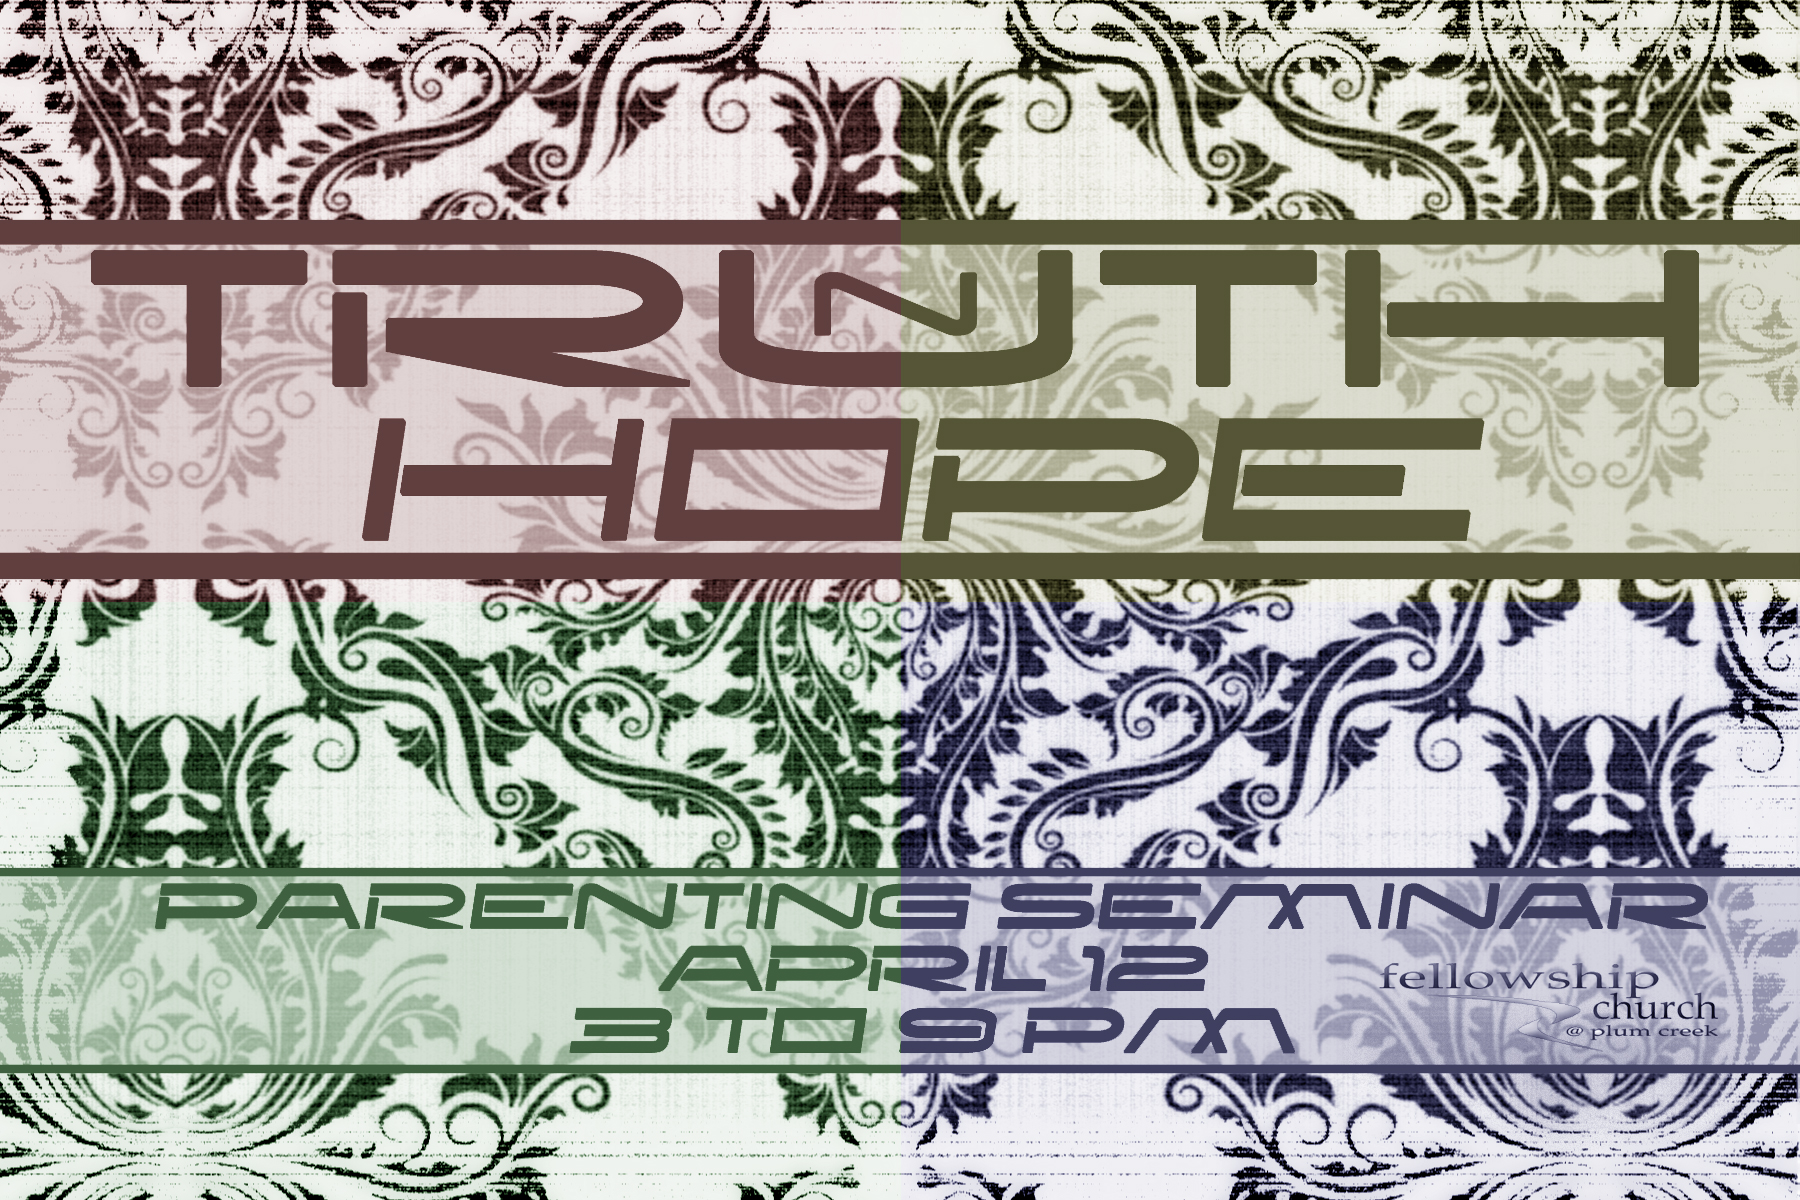 truth-n-hope-parenting-logo